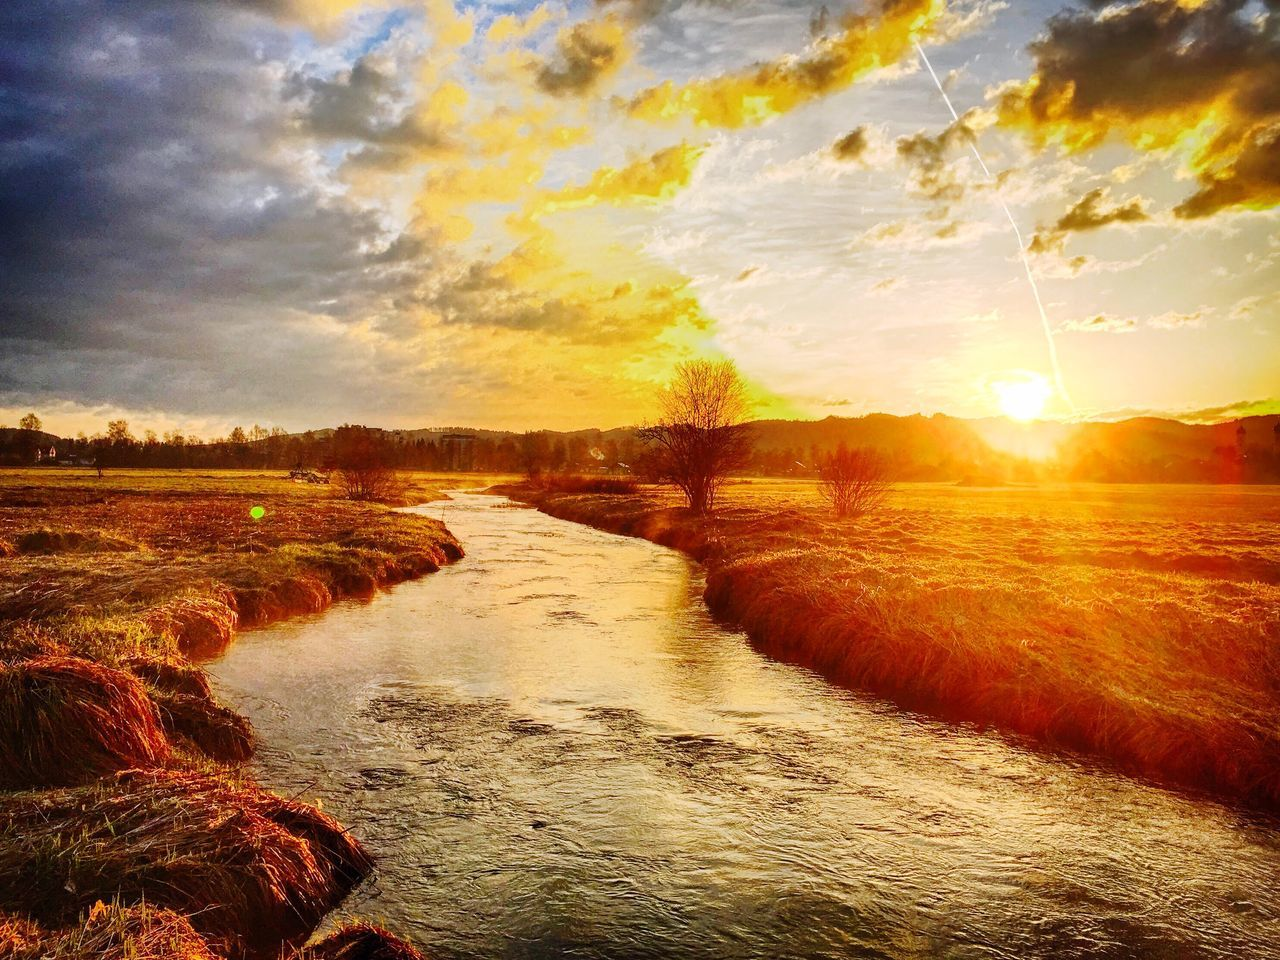 scenics, beauty in nature, nature, tranquil scene, tranquility, sky, sunset, sunlight, no people, outdoors, idyllic, water, motion, cloud - sky, landscape, river, sun, travel destinations, day, tree